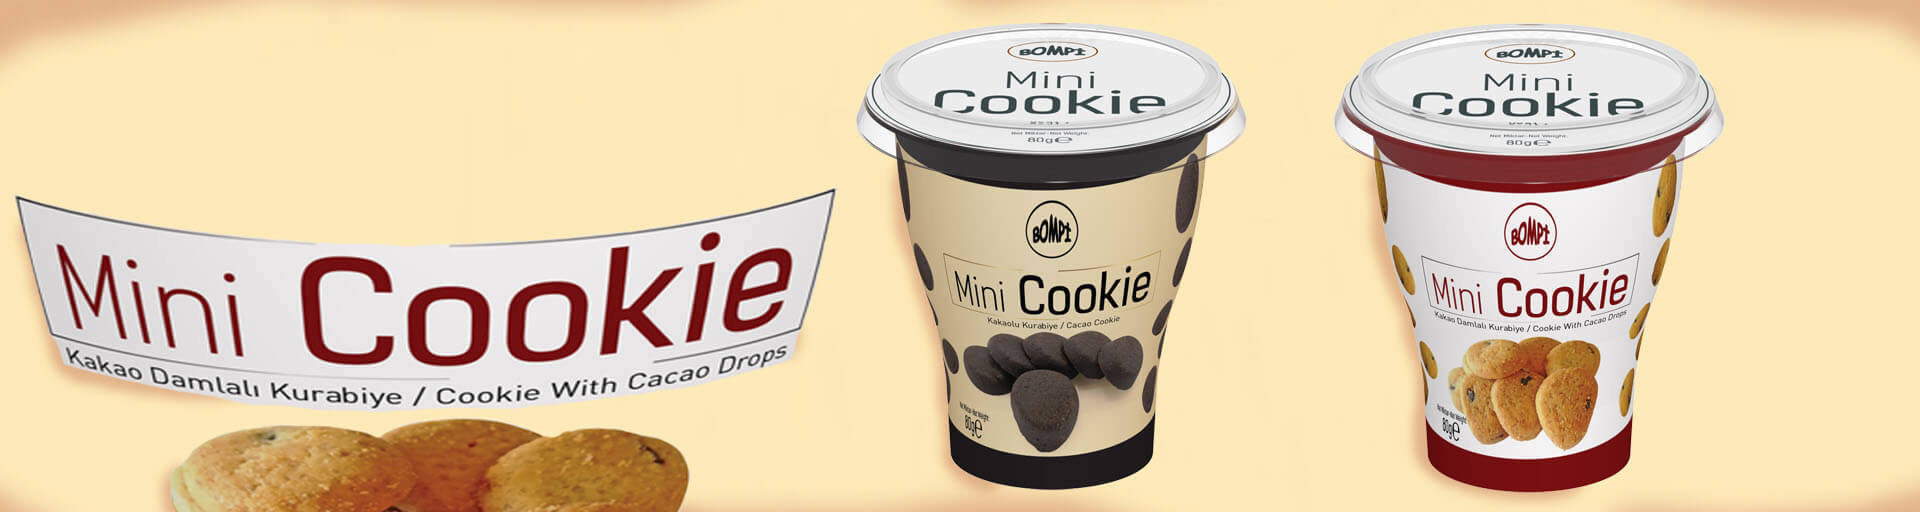 Bompi Mini Cookies